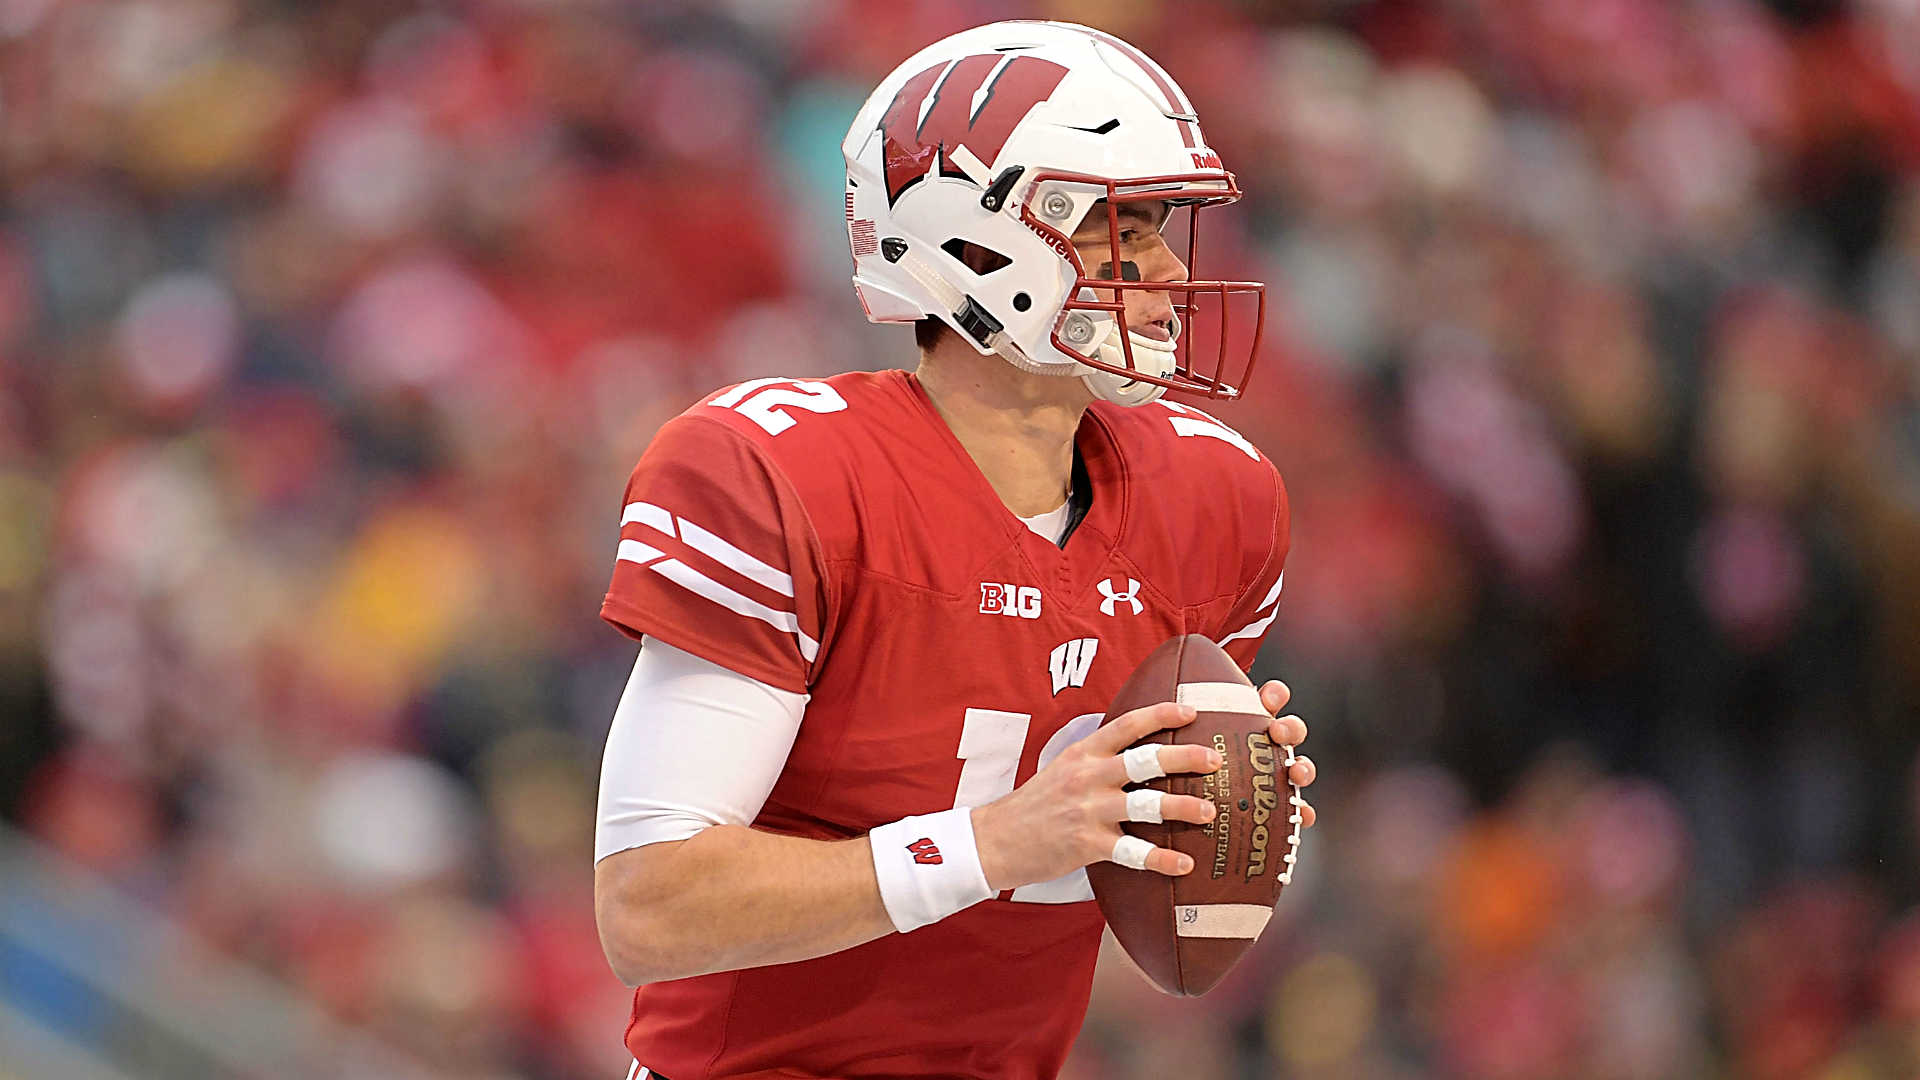 Grading A 24-10 Loss At Wisconsin